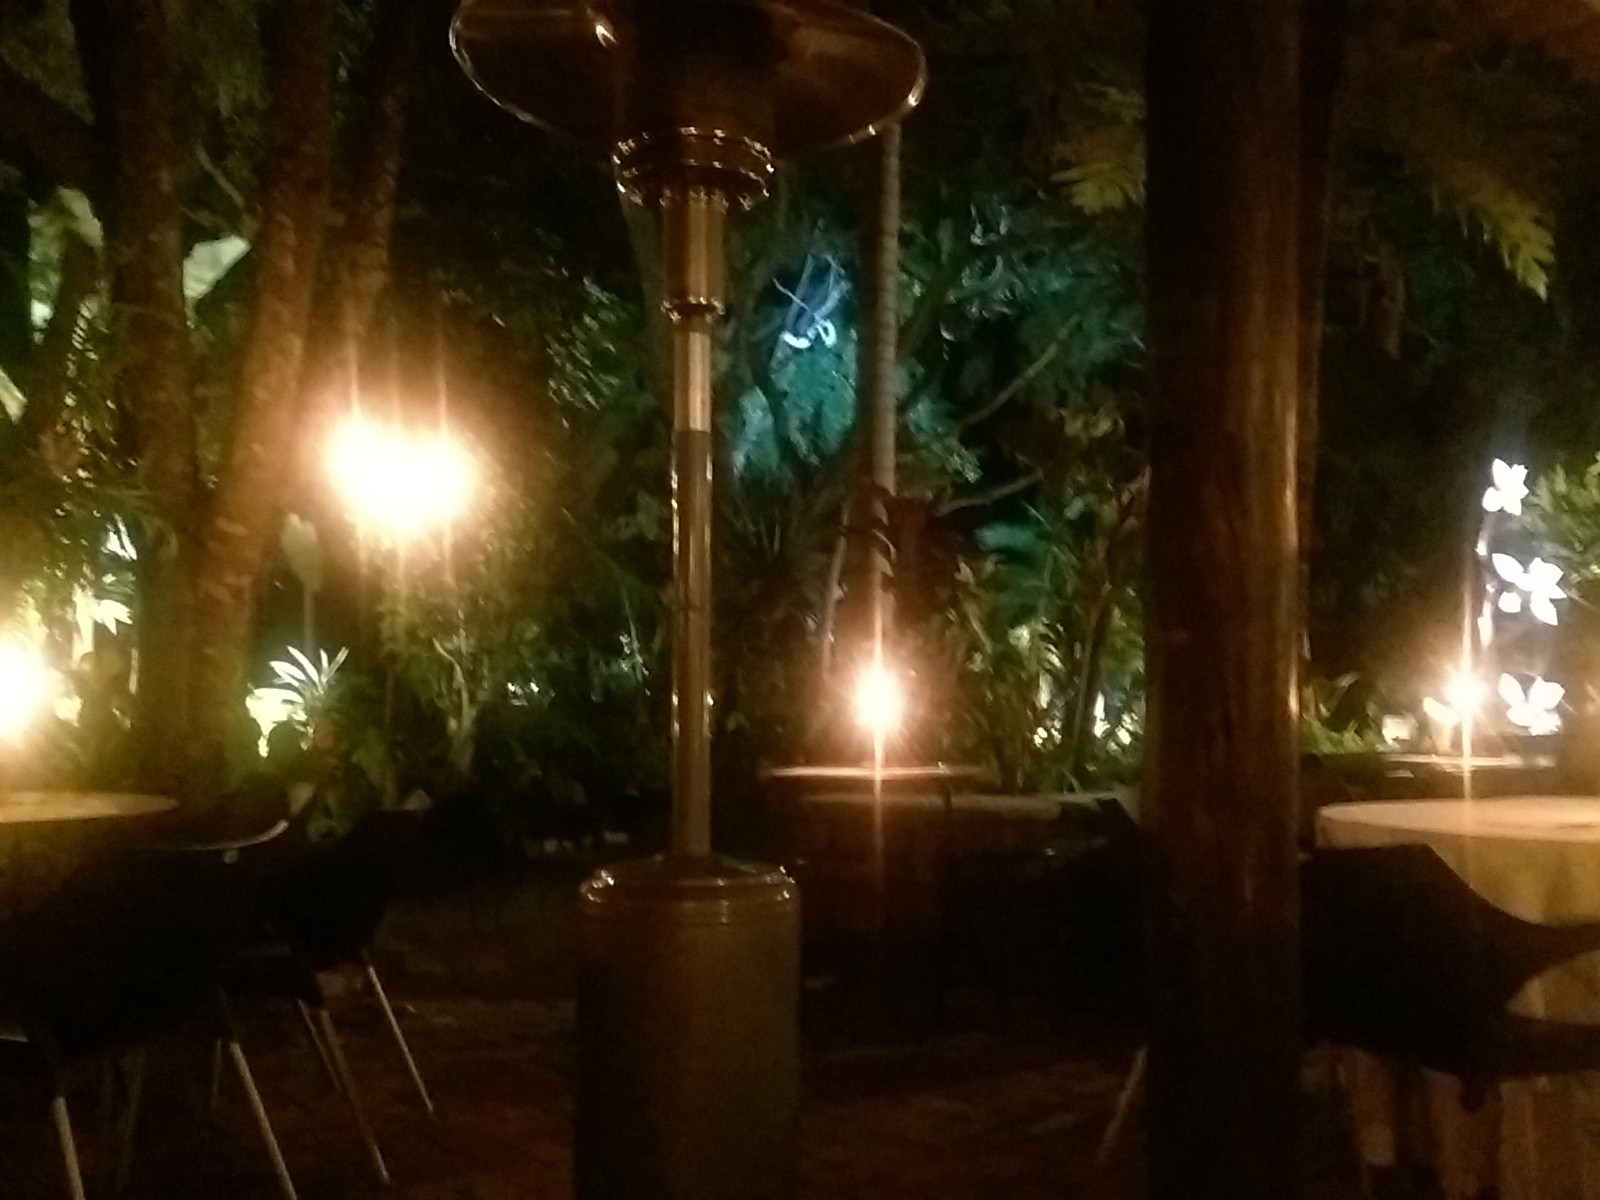 An outdoor restaurant seating area with lots of trees and lights in the dark